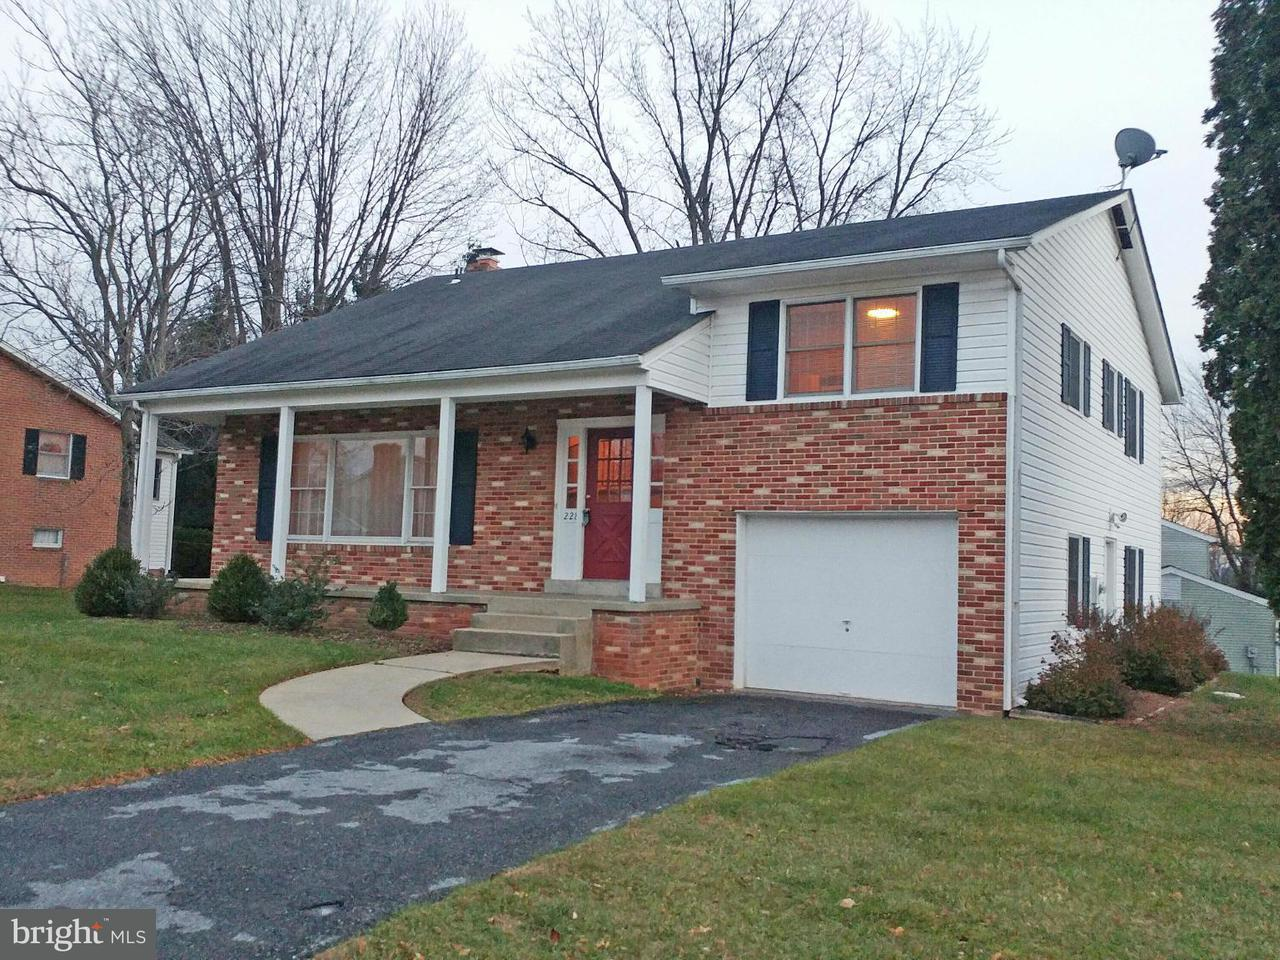 Other Residential for Rent at 228 Glade Blvd Walkersville, Maryland 21793 United States